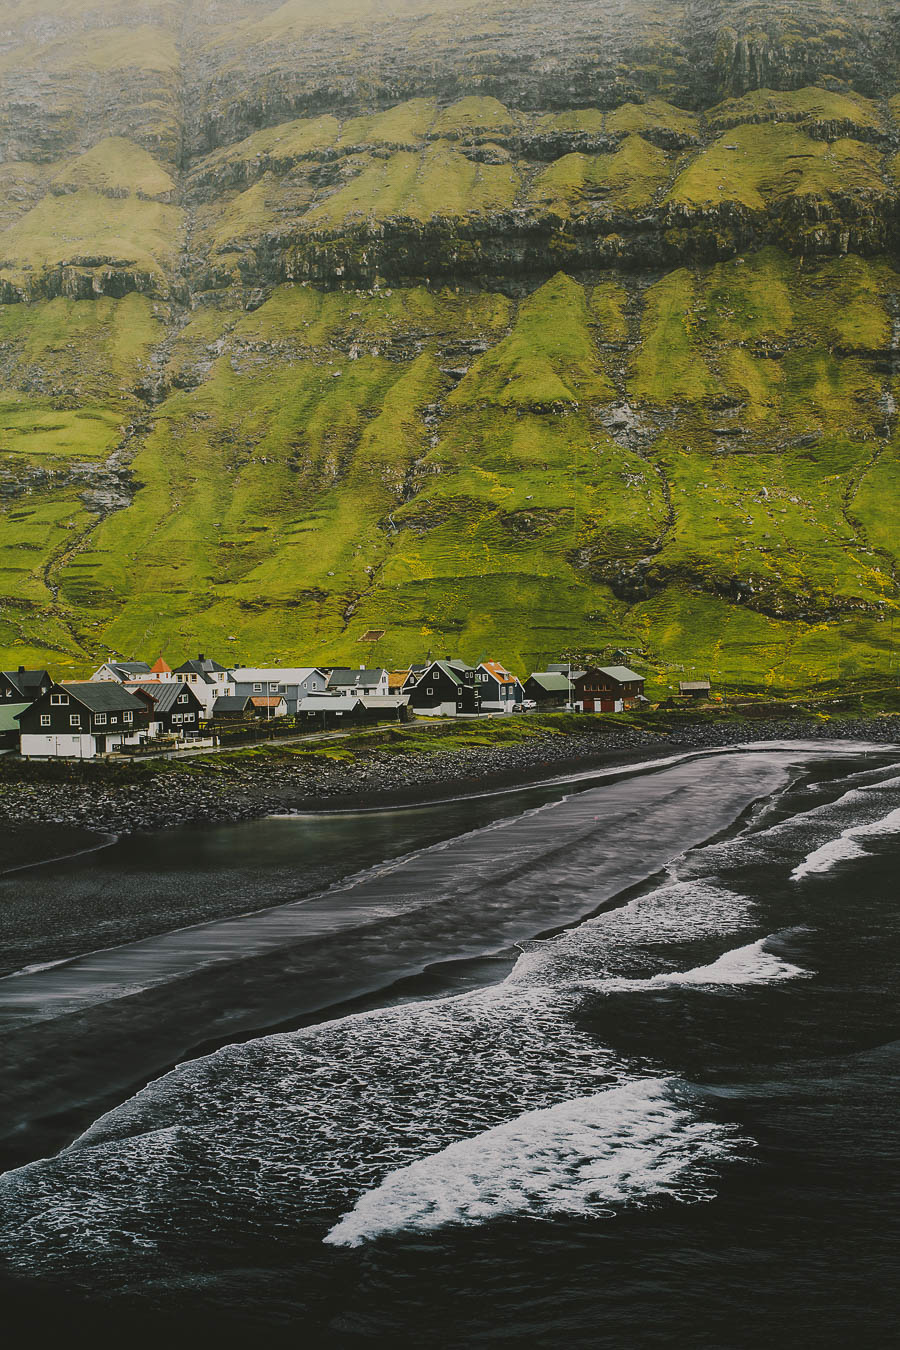 Small village surrounded by green mountains and a black sandy beach